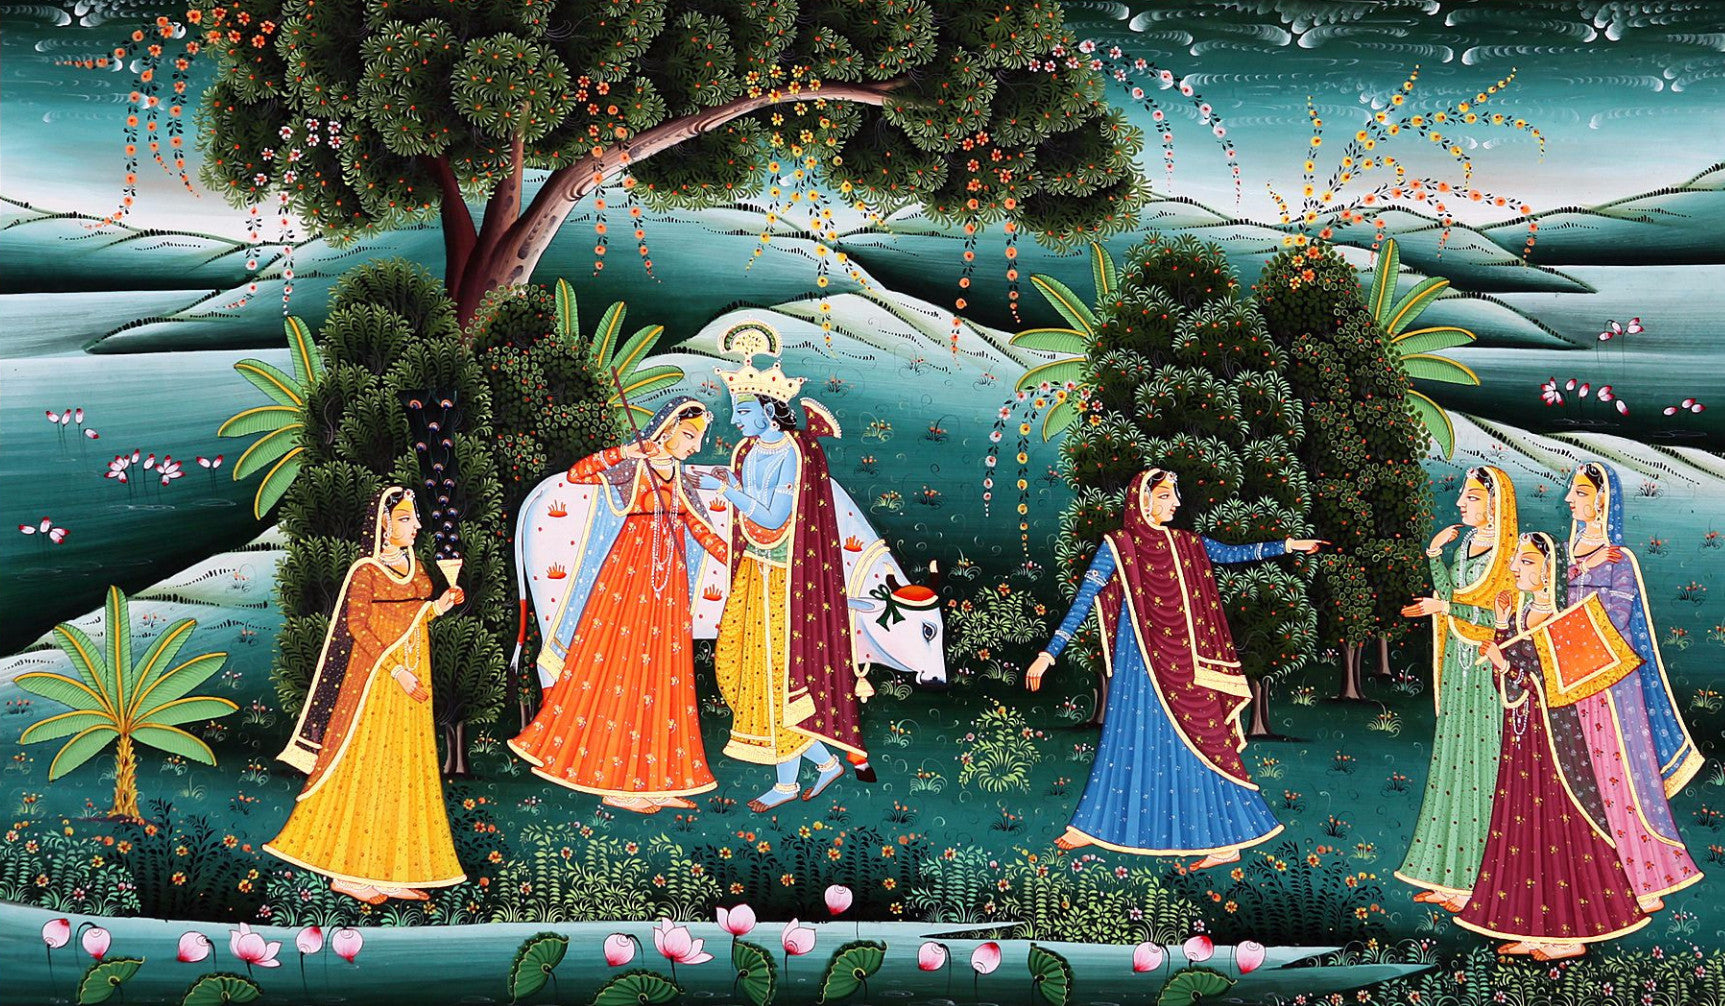 Krishna Paintings — Miniature | Buy Posters, Frames, Canvas, Digital Art & Large Size Prints